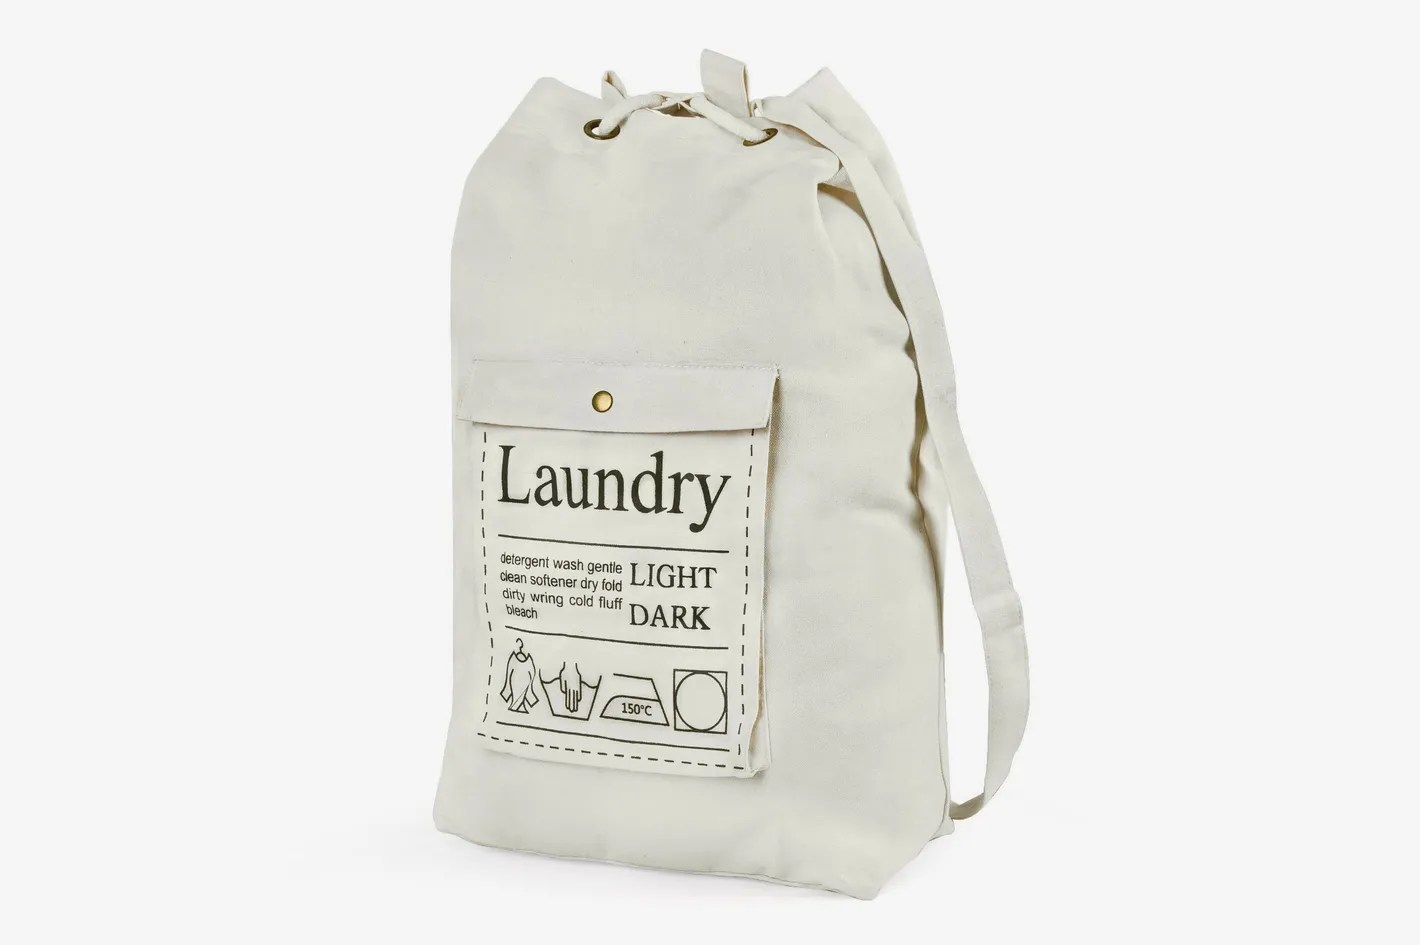 Laundry Clothes Bag The 10 Best Laundry Bags For 2018